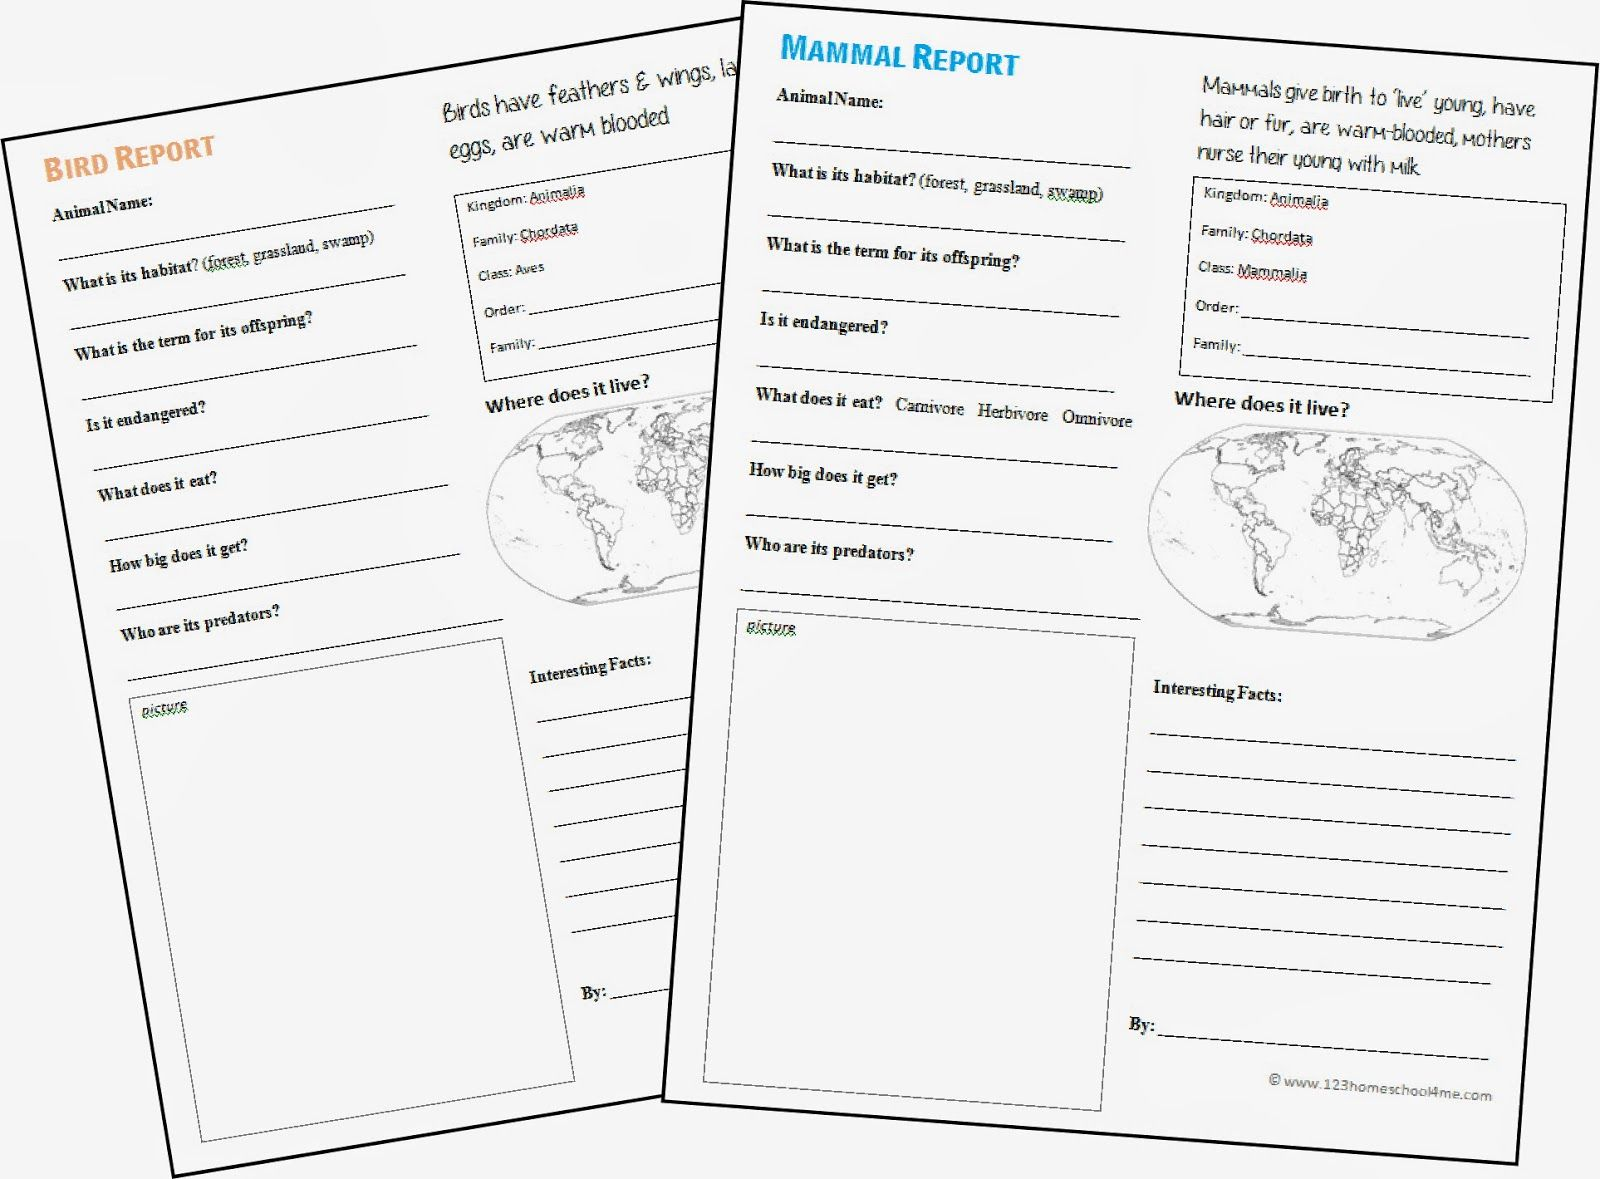 Free Animal Report Form Printable